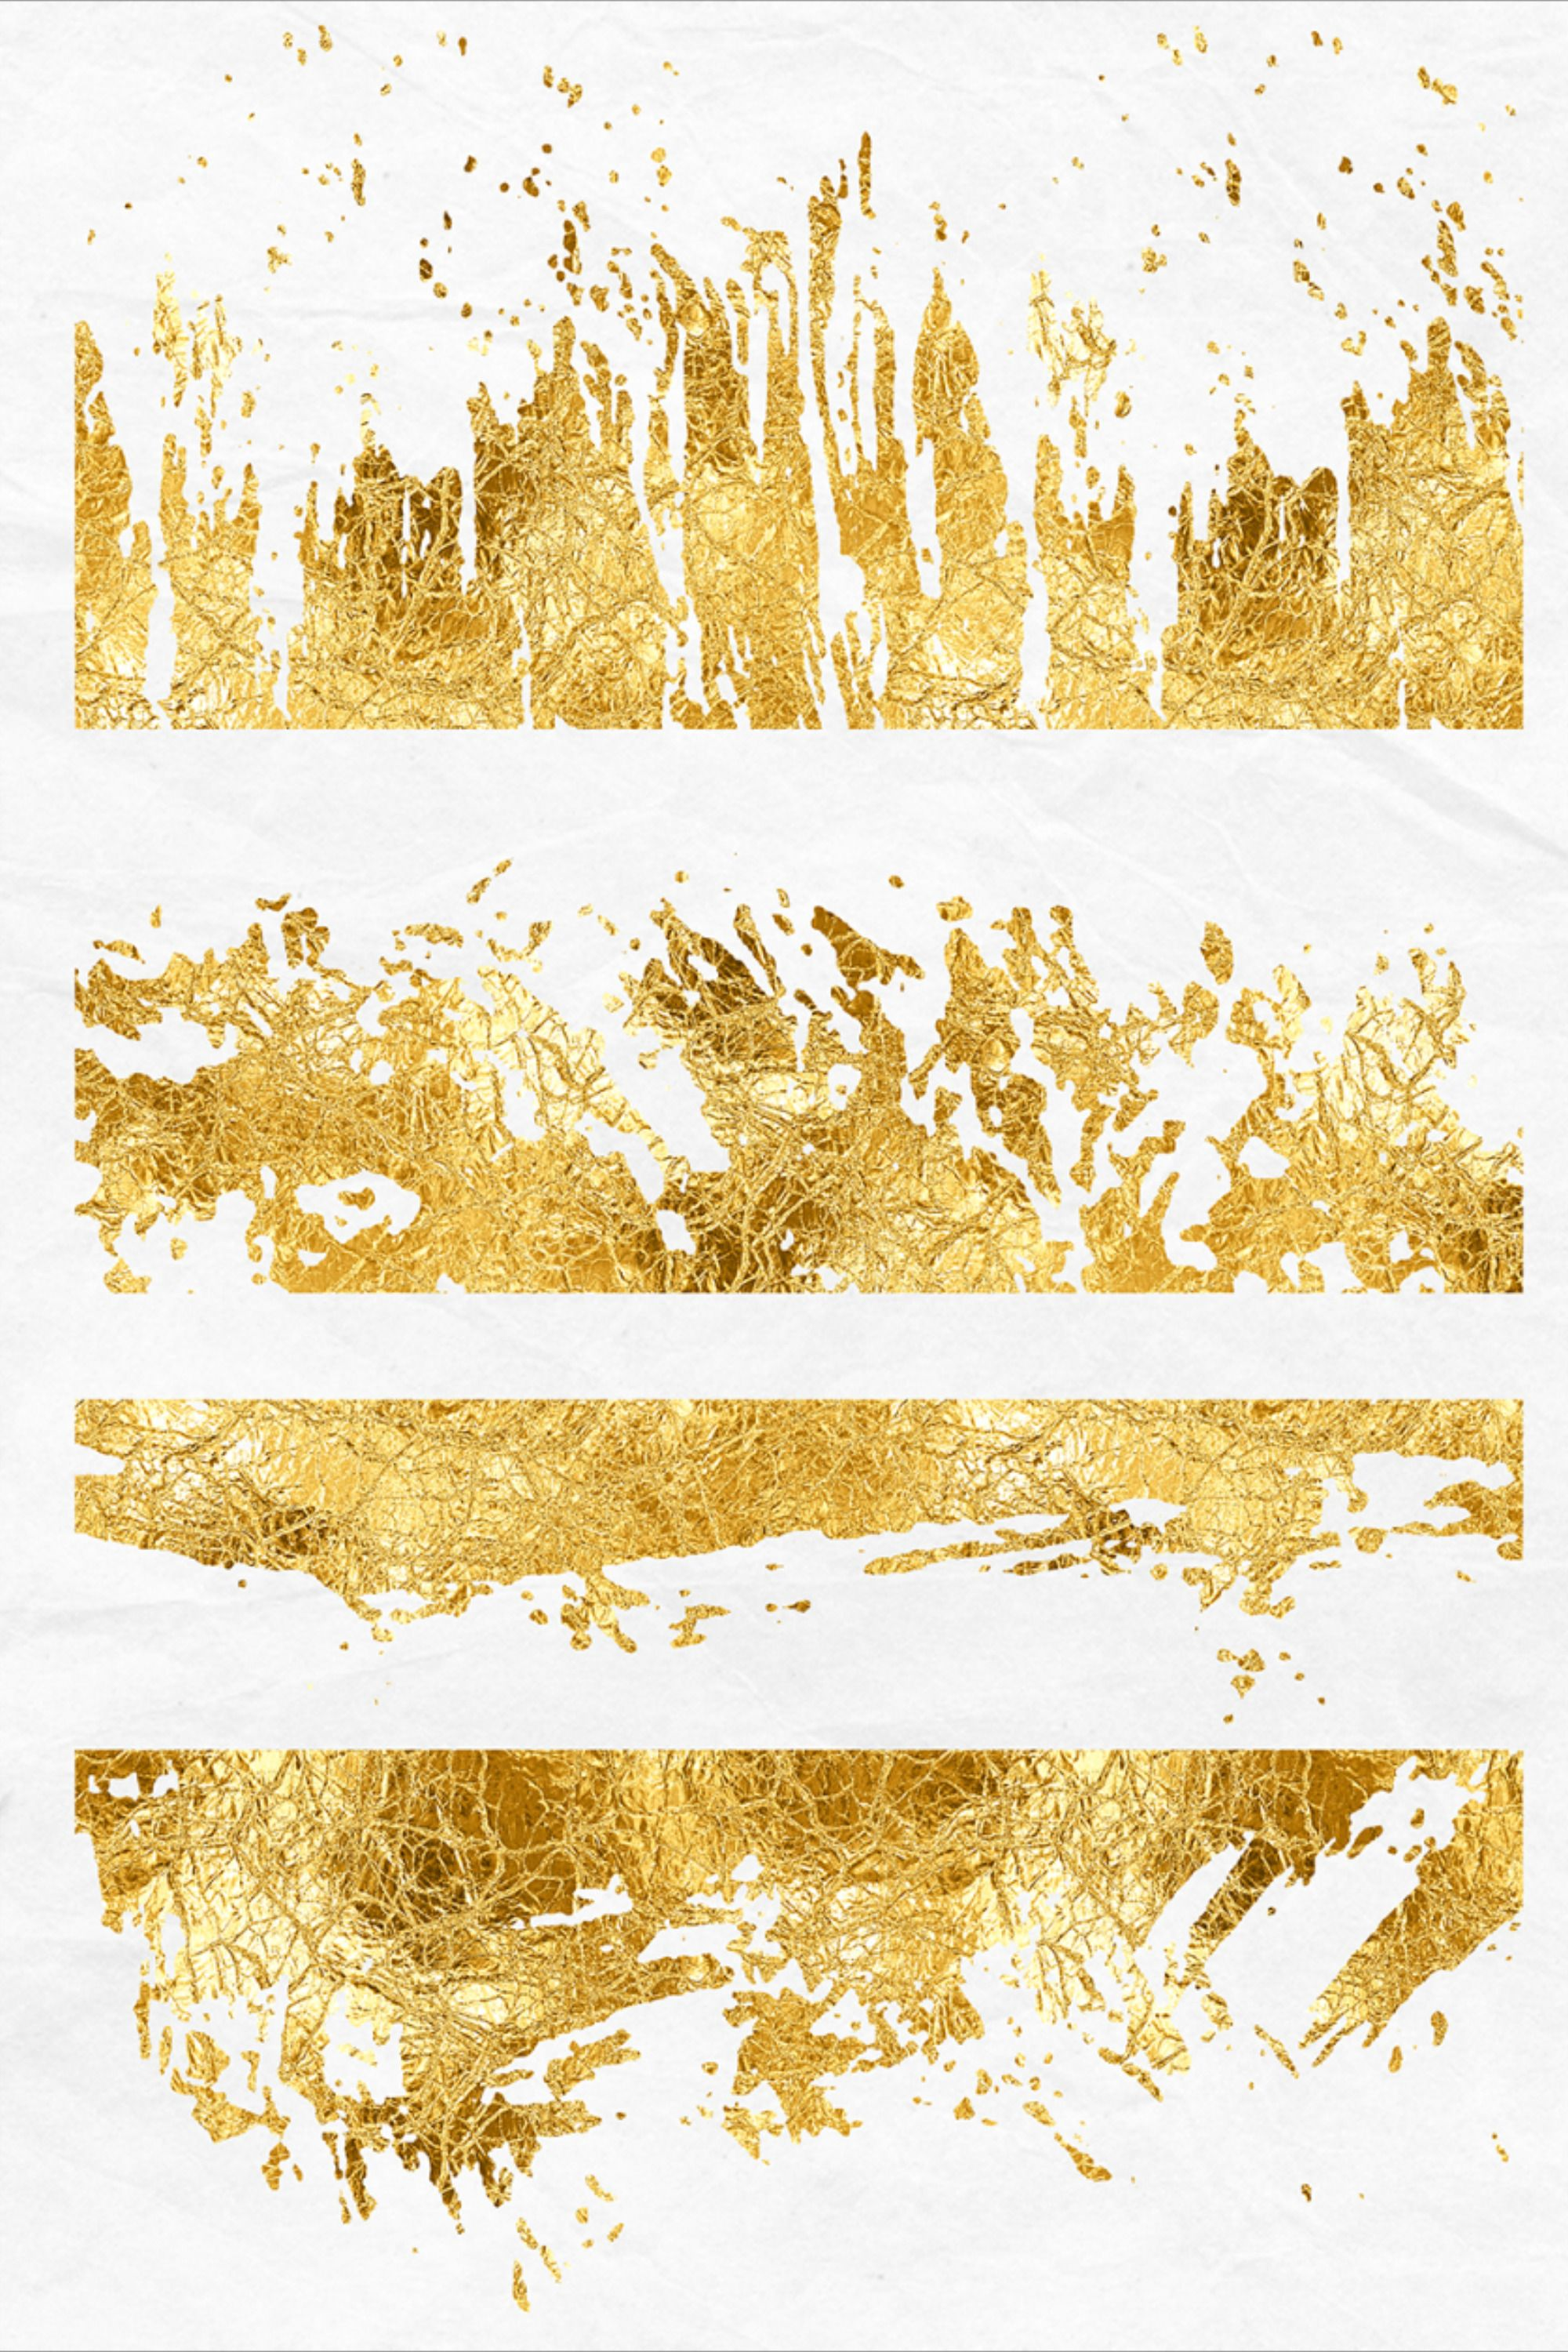 Gold Foil Flake Clipart Gold Borders Overlays Gold Foil Frames Gold Grunge Png Clipart Gold Leaf Art Gold Design Elemets Gold Clipart Gold Design Background Gold Leaf Art Gold Foil Background